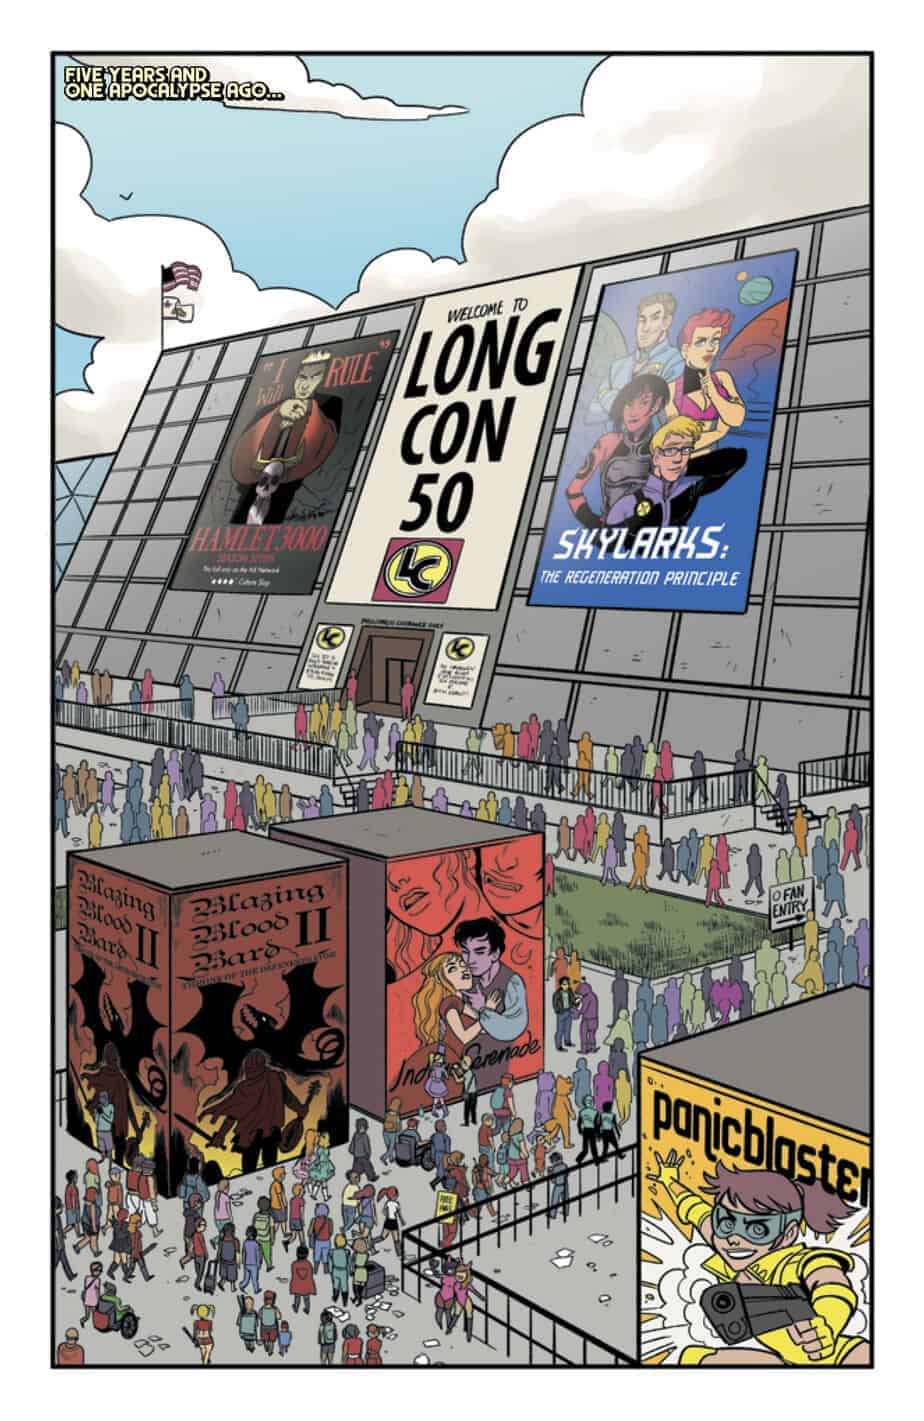 Pages-from-LONGCON-#1-MARKETING-5